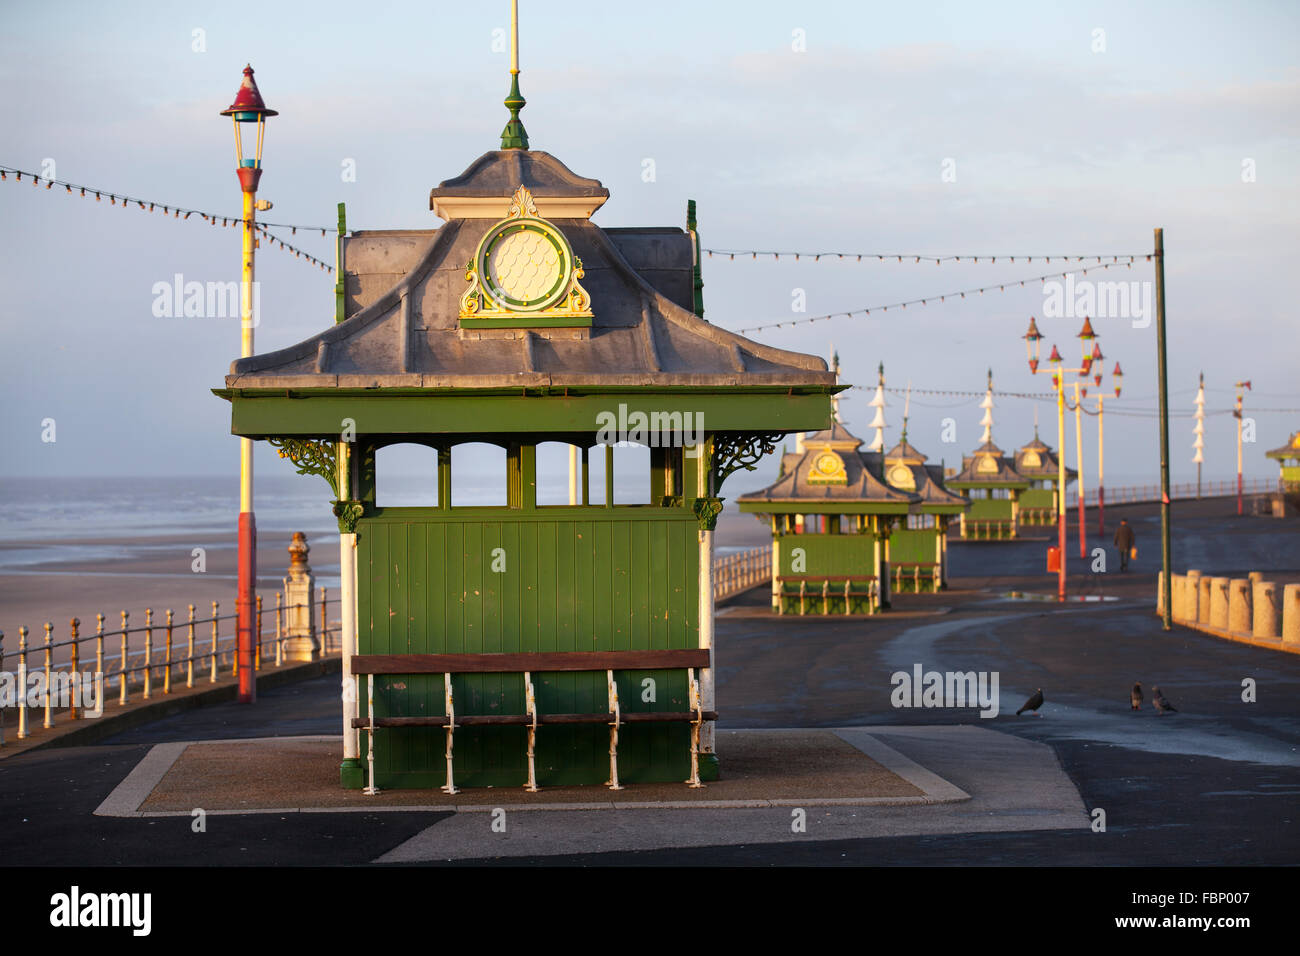 Preserved cast iron Edwardian  promenade  decorated shelters, Wrought iron, Victorian Shelter on Blackpool seafront - Stock Image